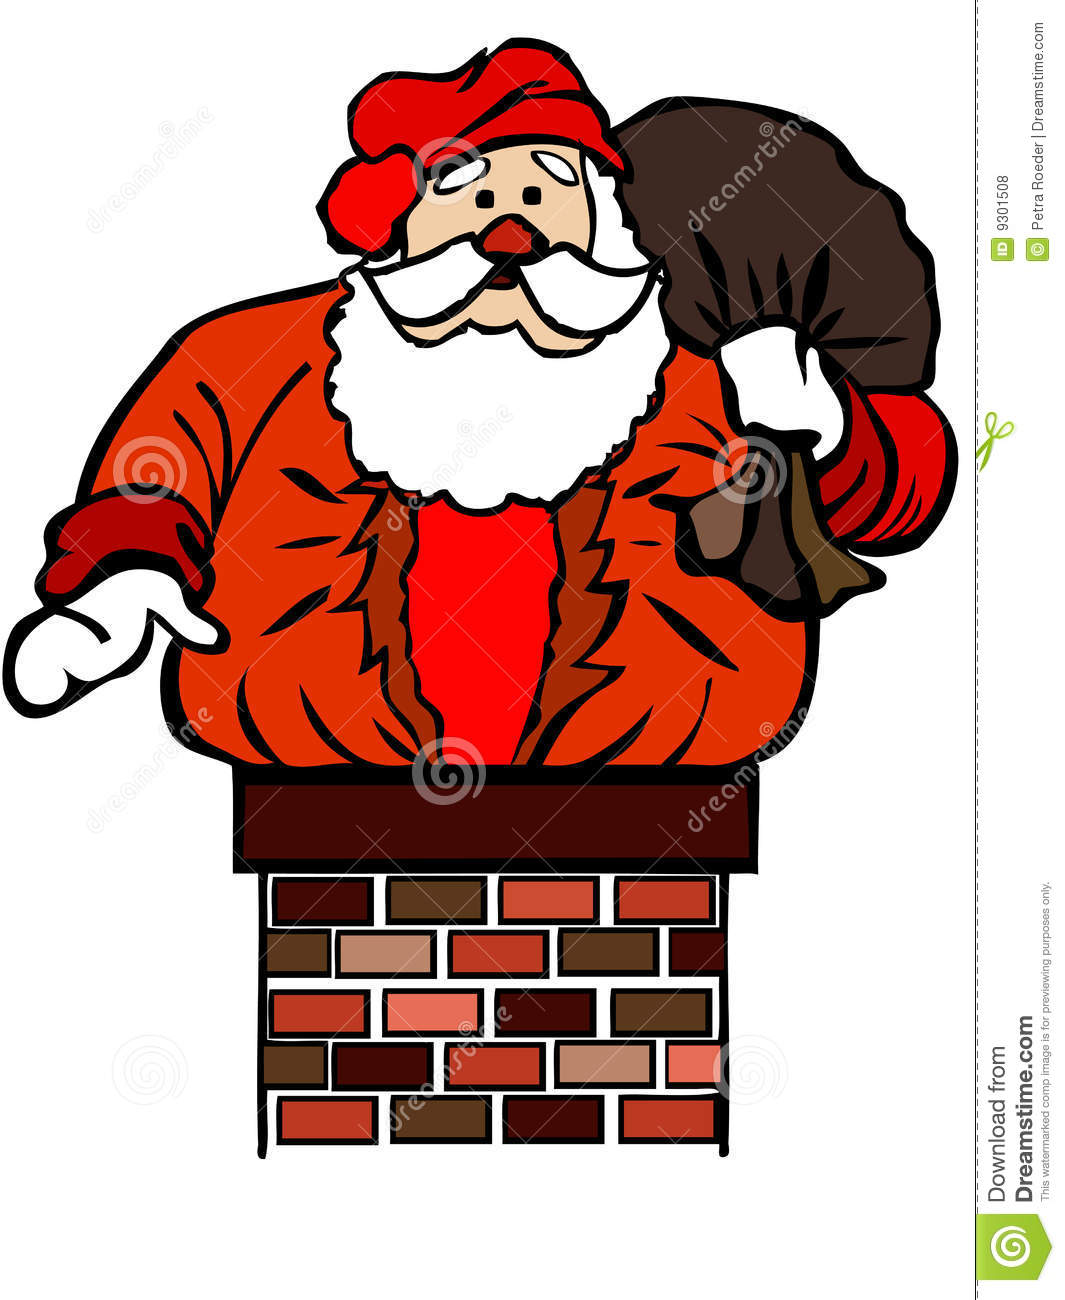 Illustration of Santa Claus stuck in chimney, isolated on white ...